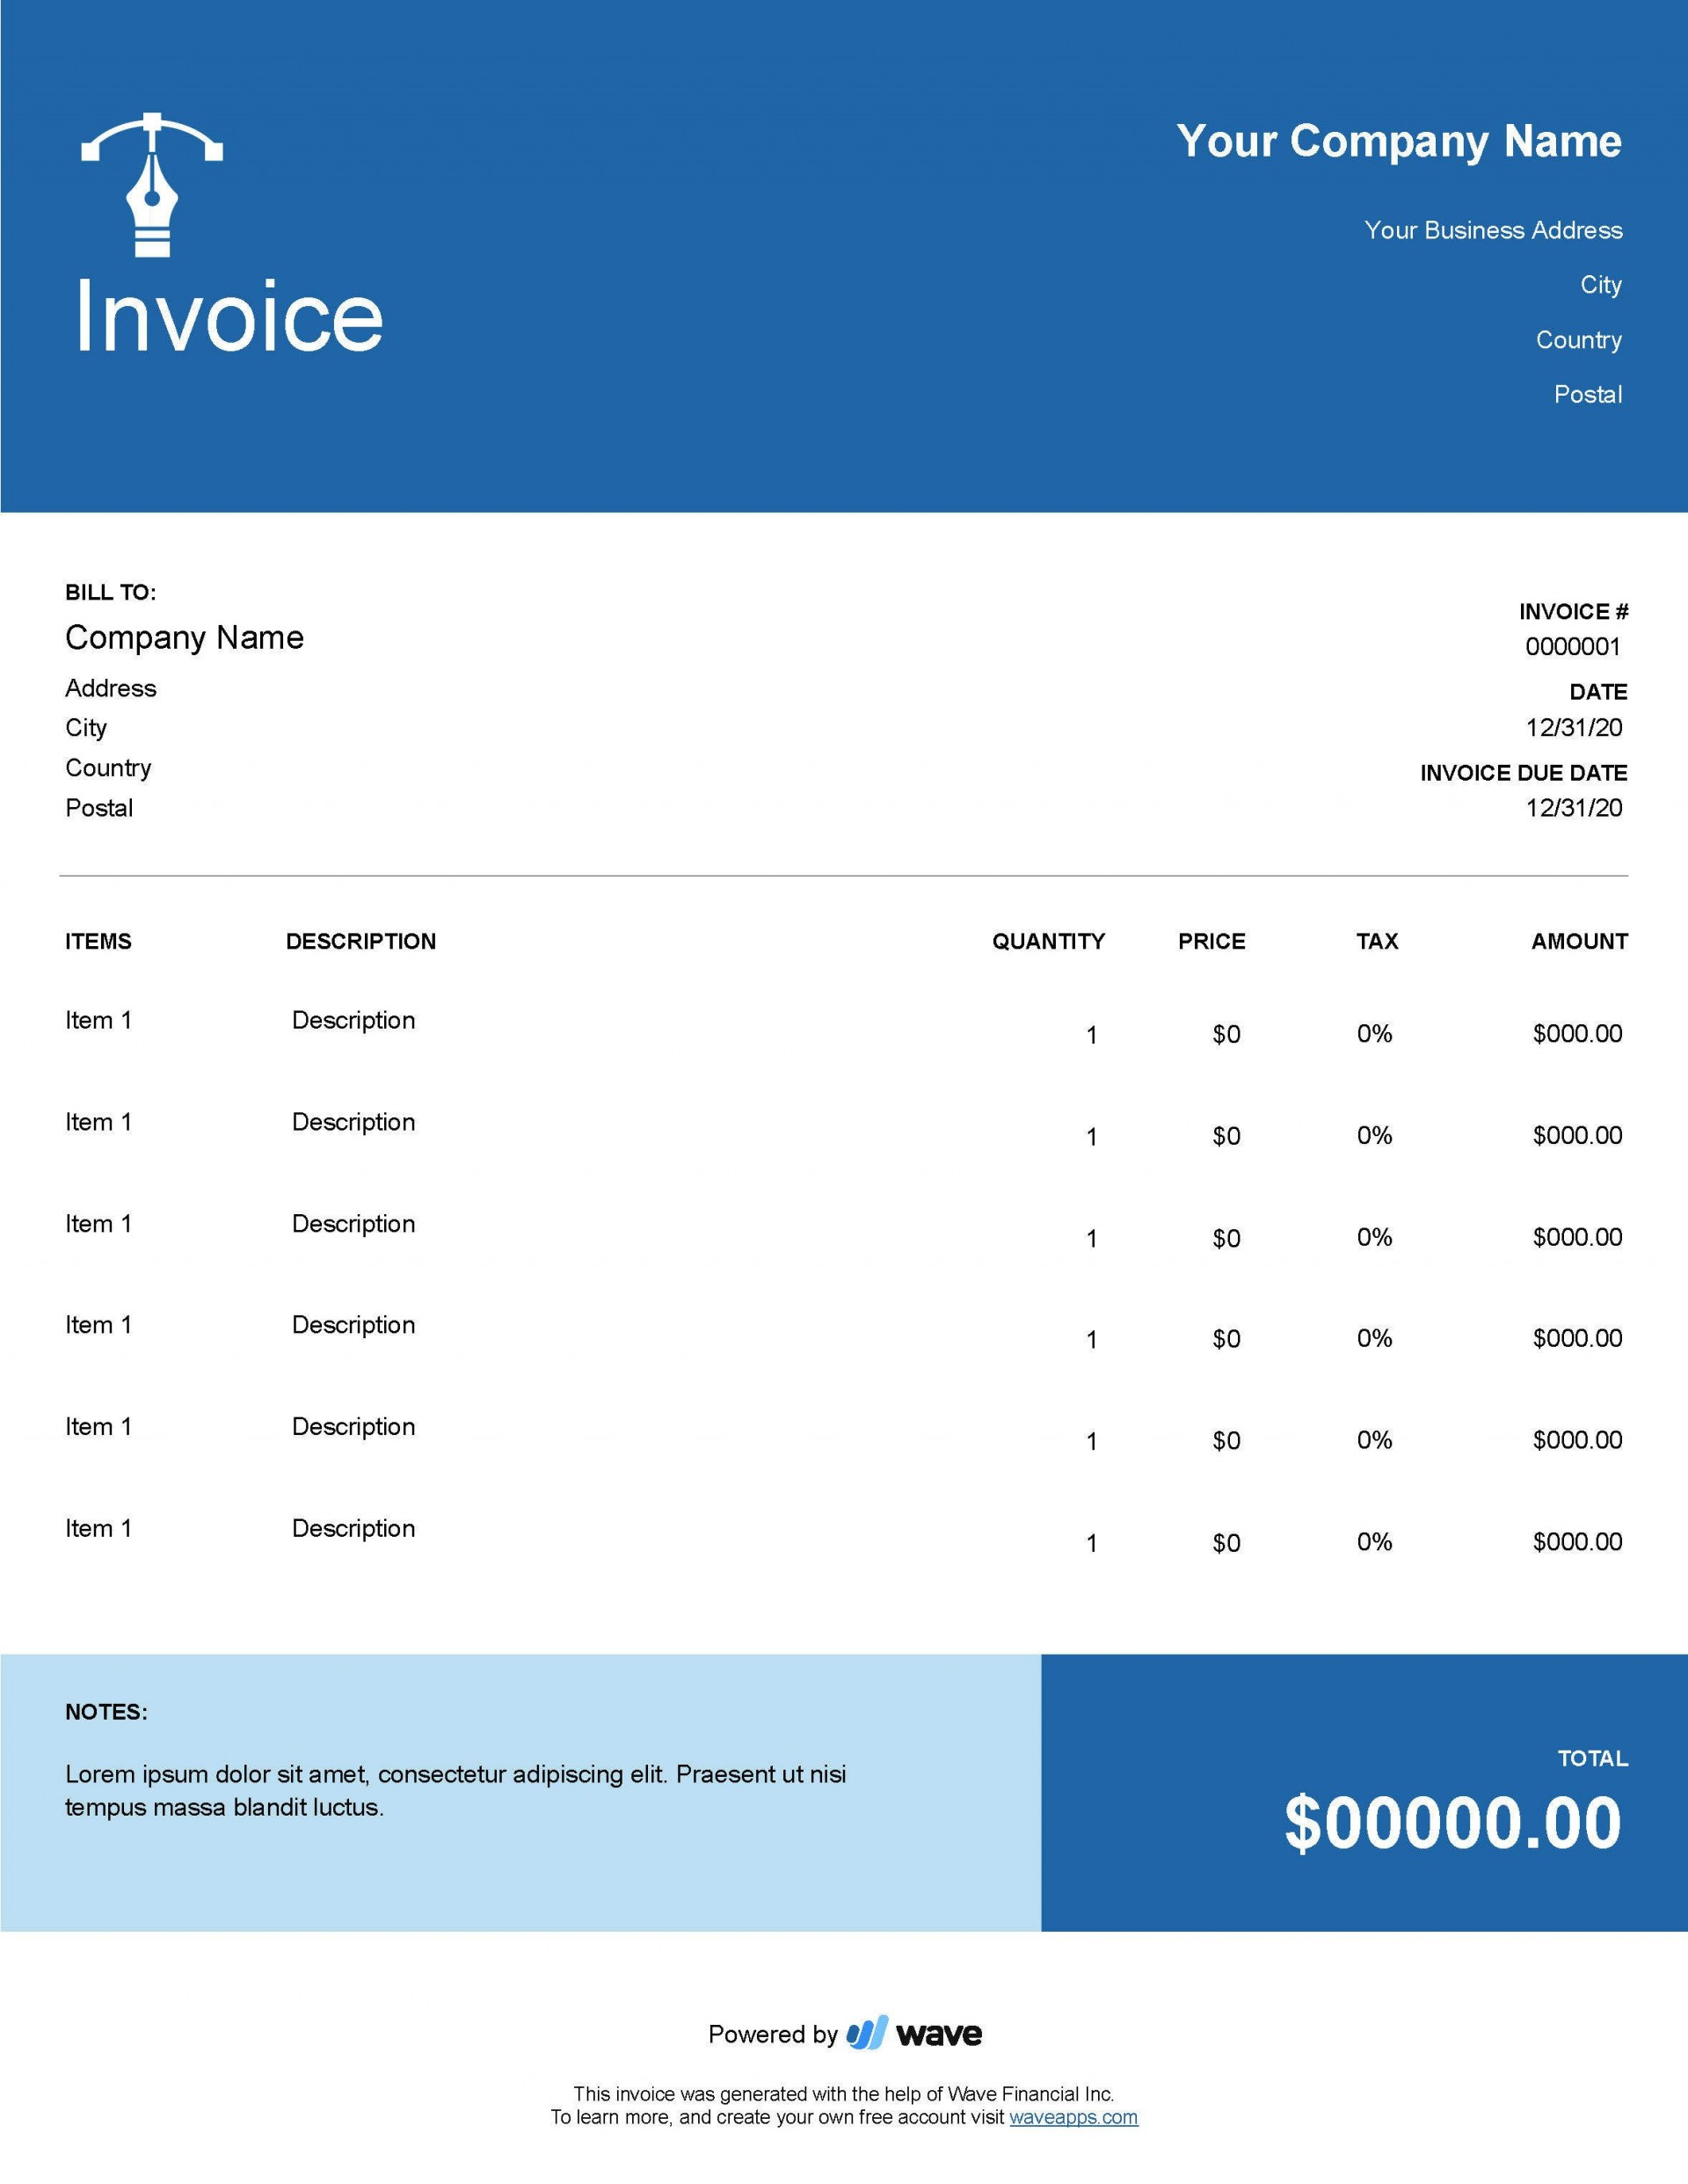 007 Unforgettable Freelance Graphic Design Invoice Example High Def  Template Contract1920